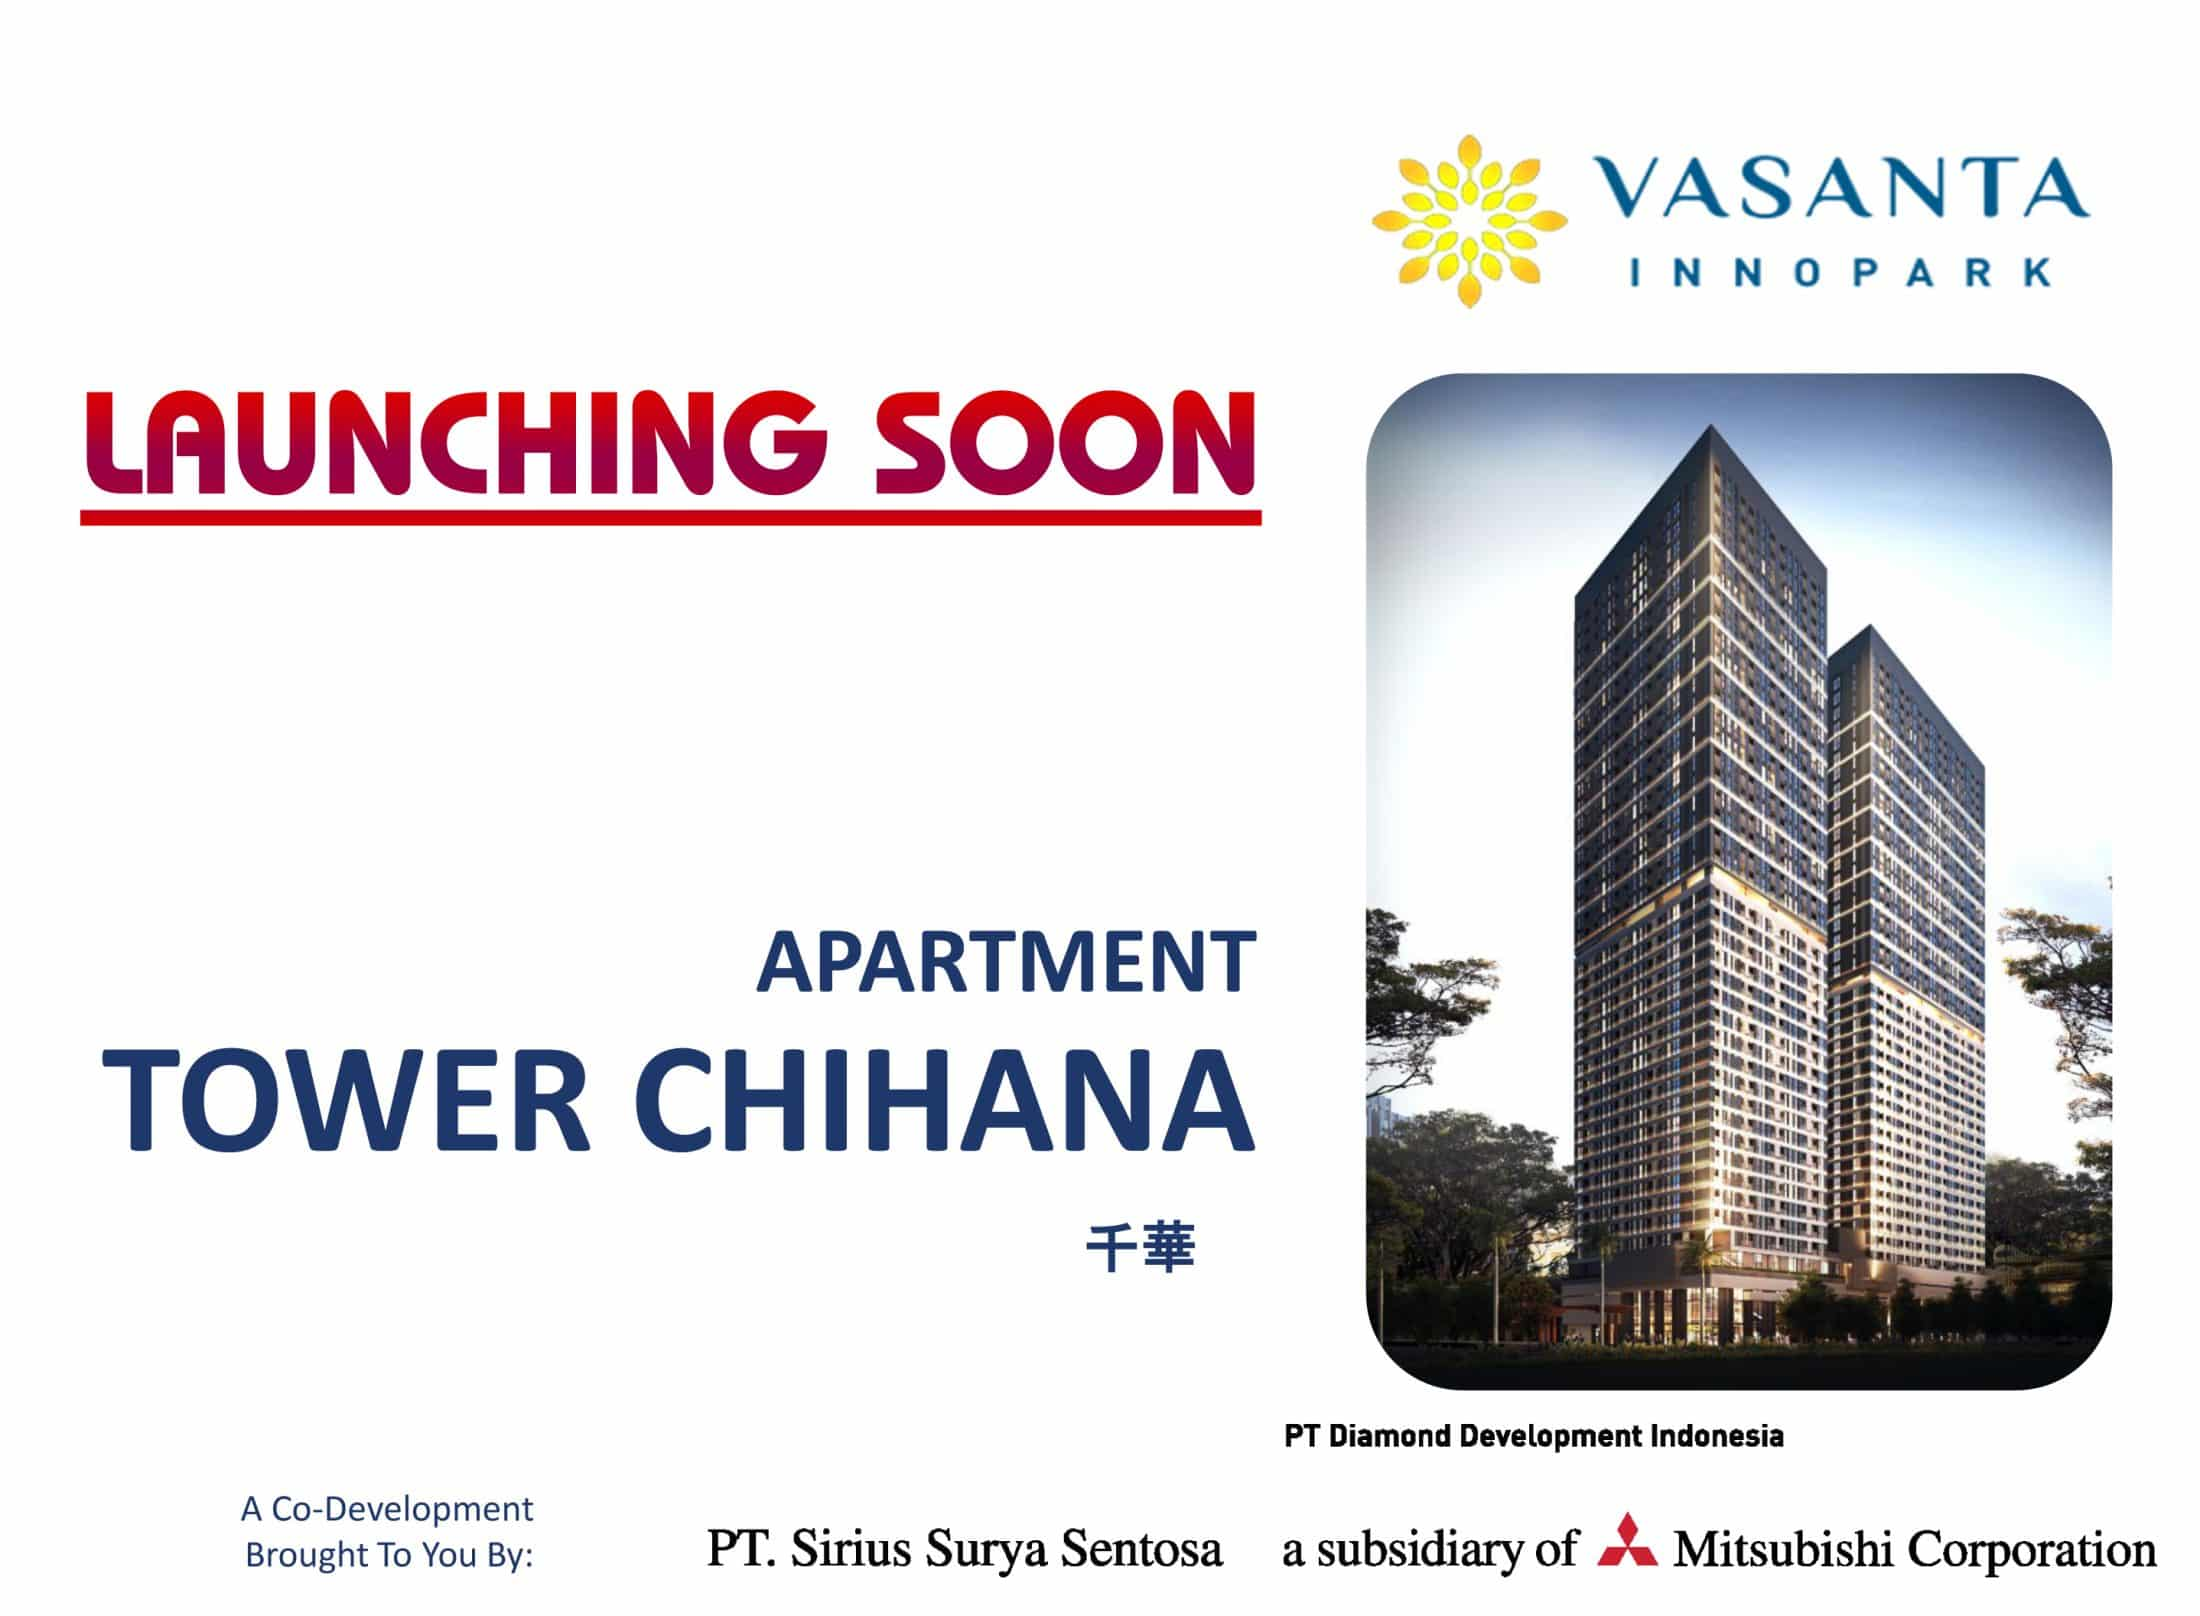 Launching Apartemen Vasanta Innopark Tower Chihana Type Studio